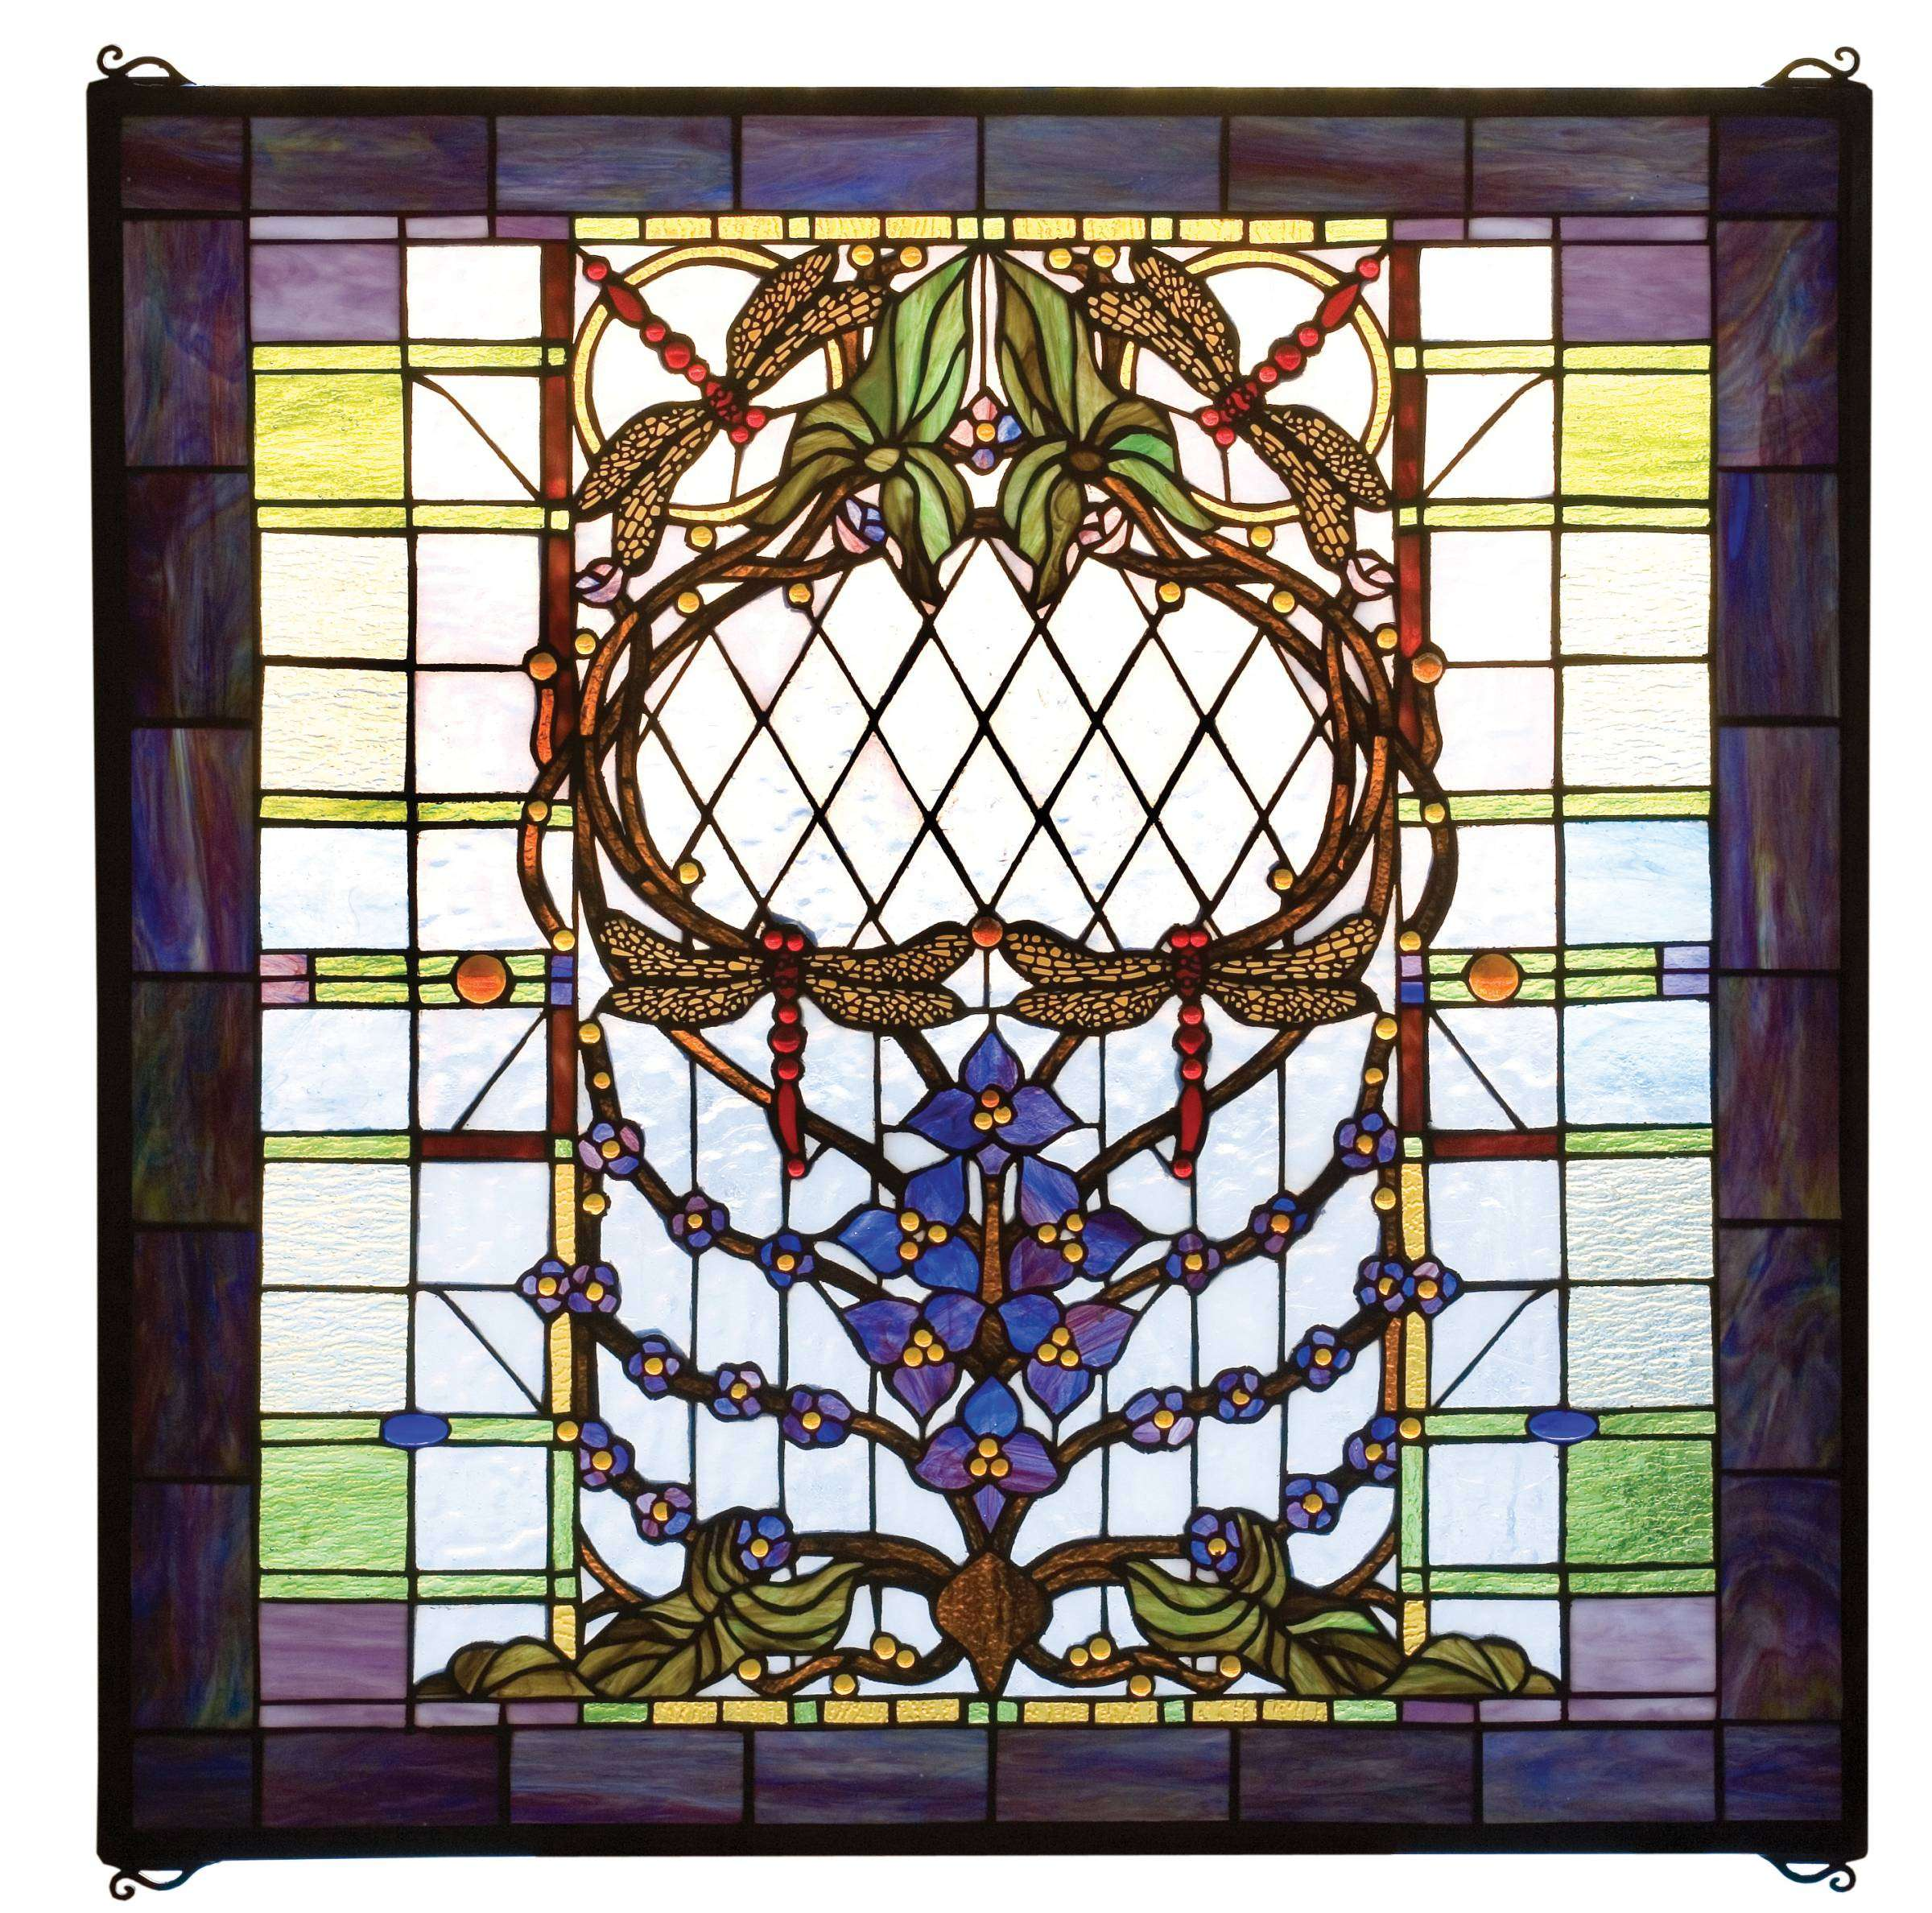 Meyda Tiffany 20579 Dragonfly Allure Stained Glass Window in Tiffany Items finish